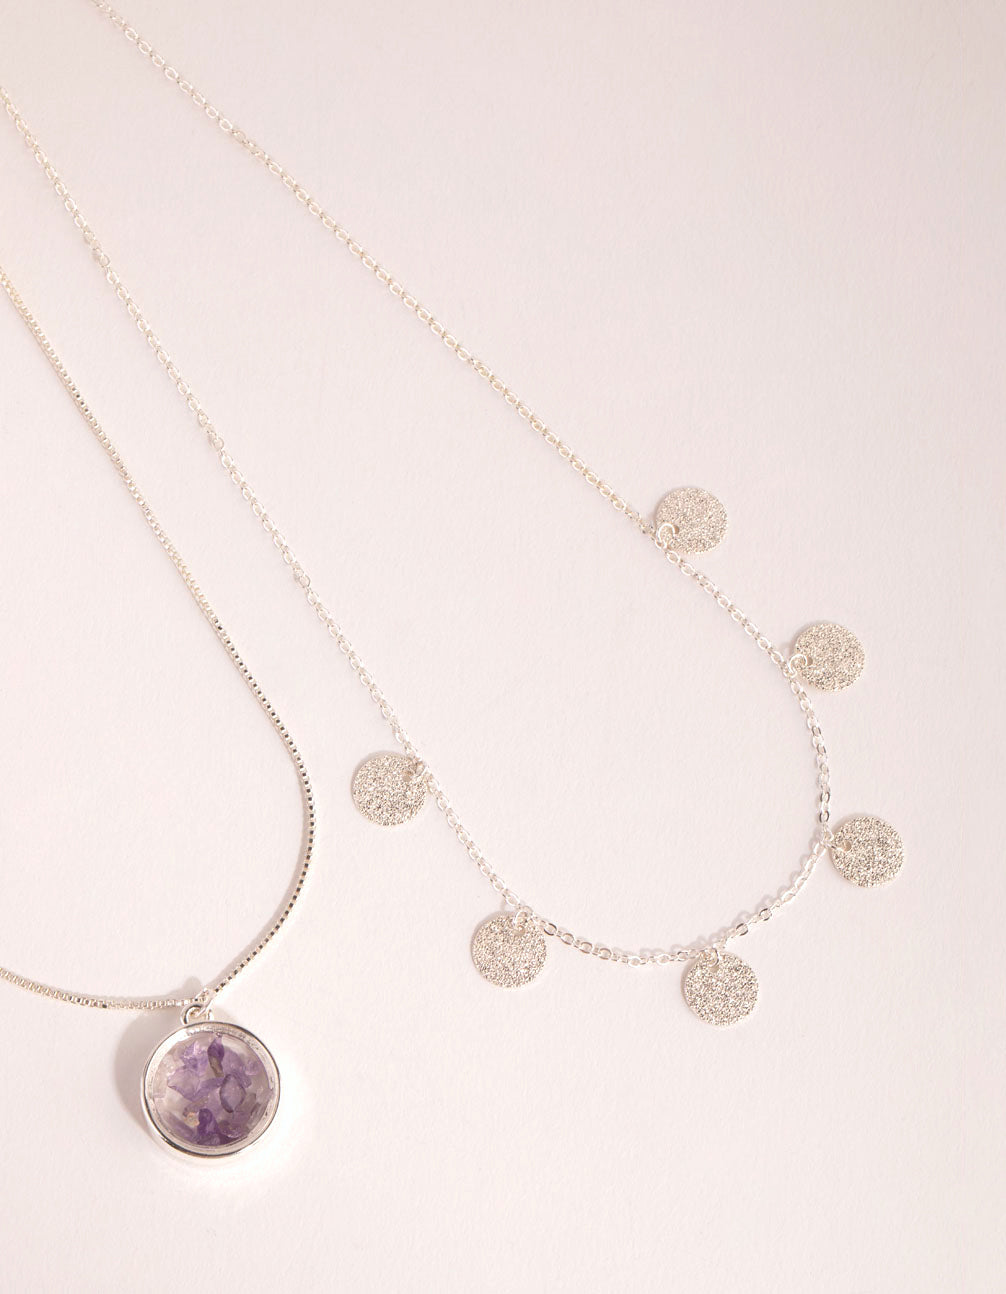 Silver Amethyst Shaker Necklace